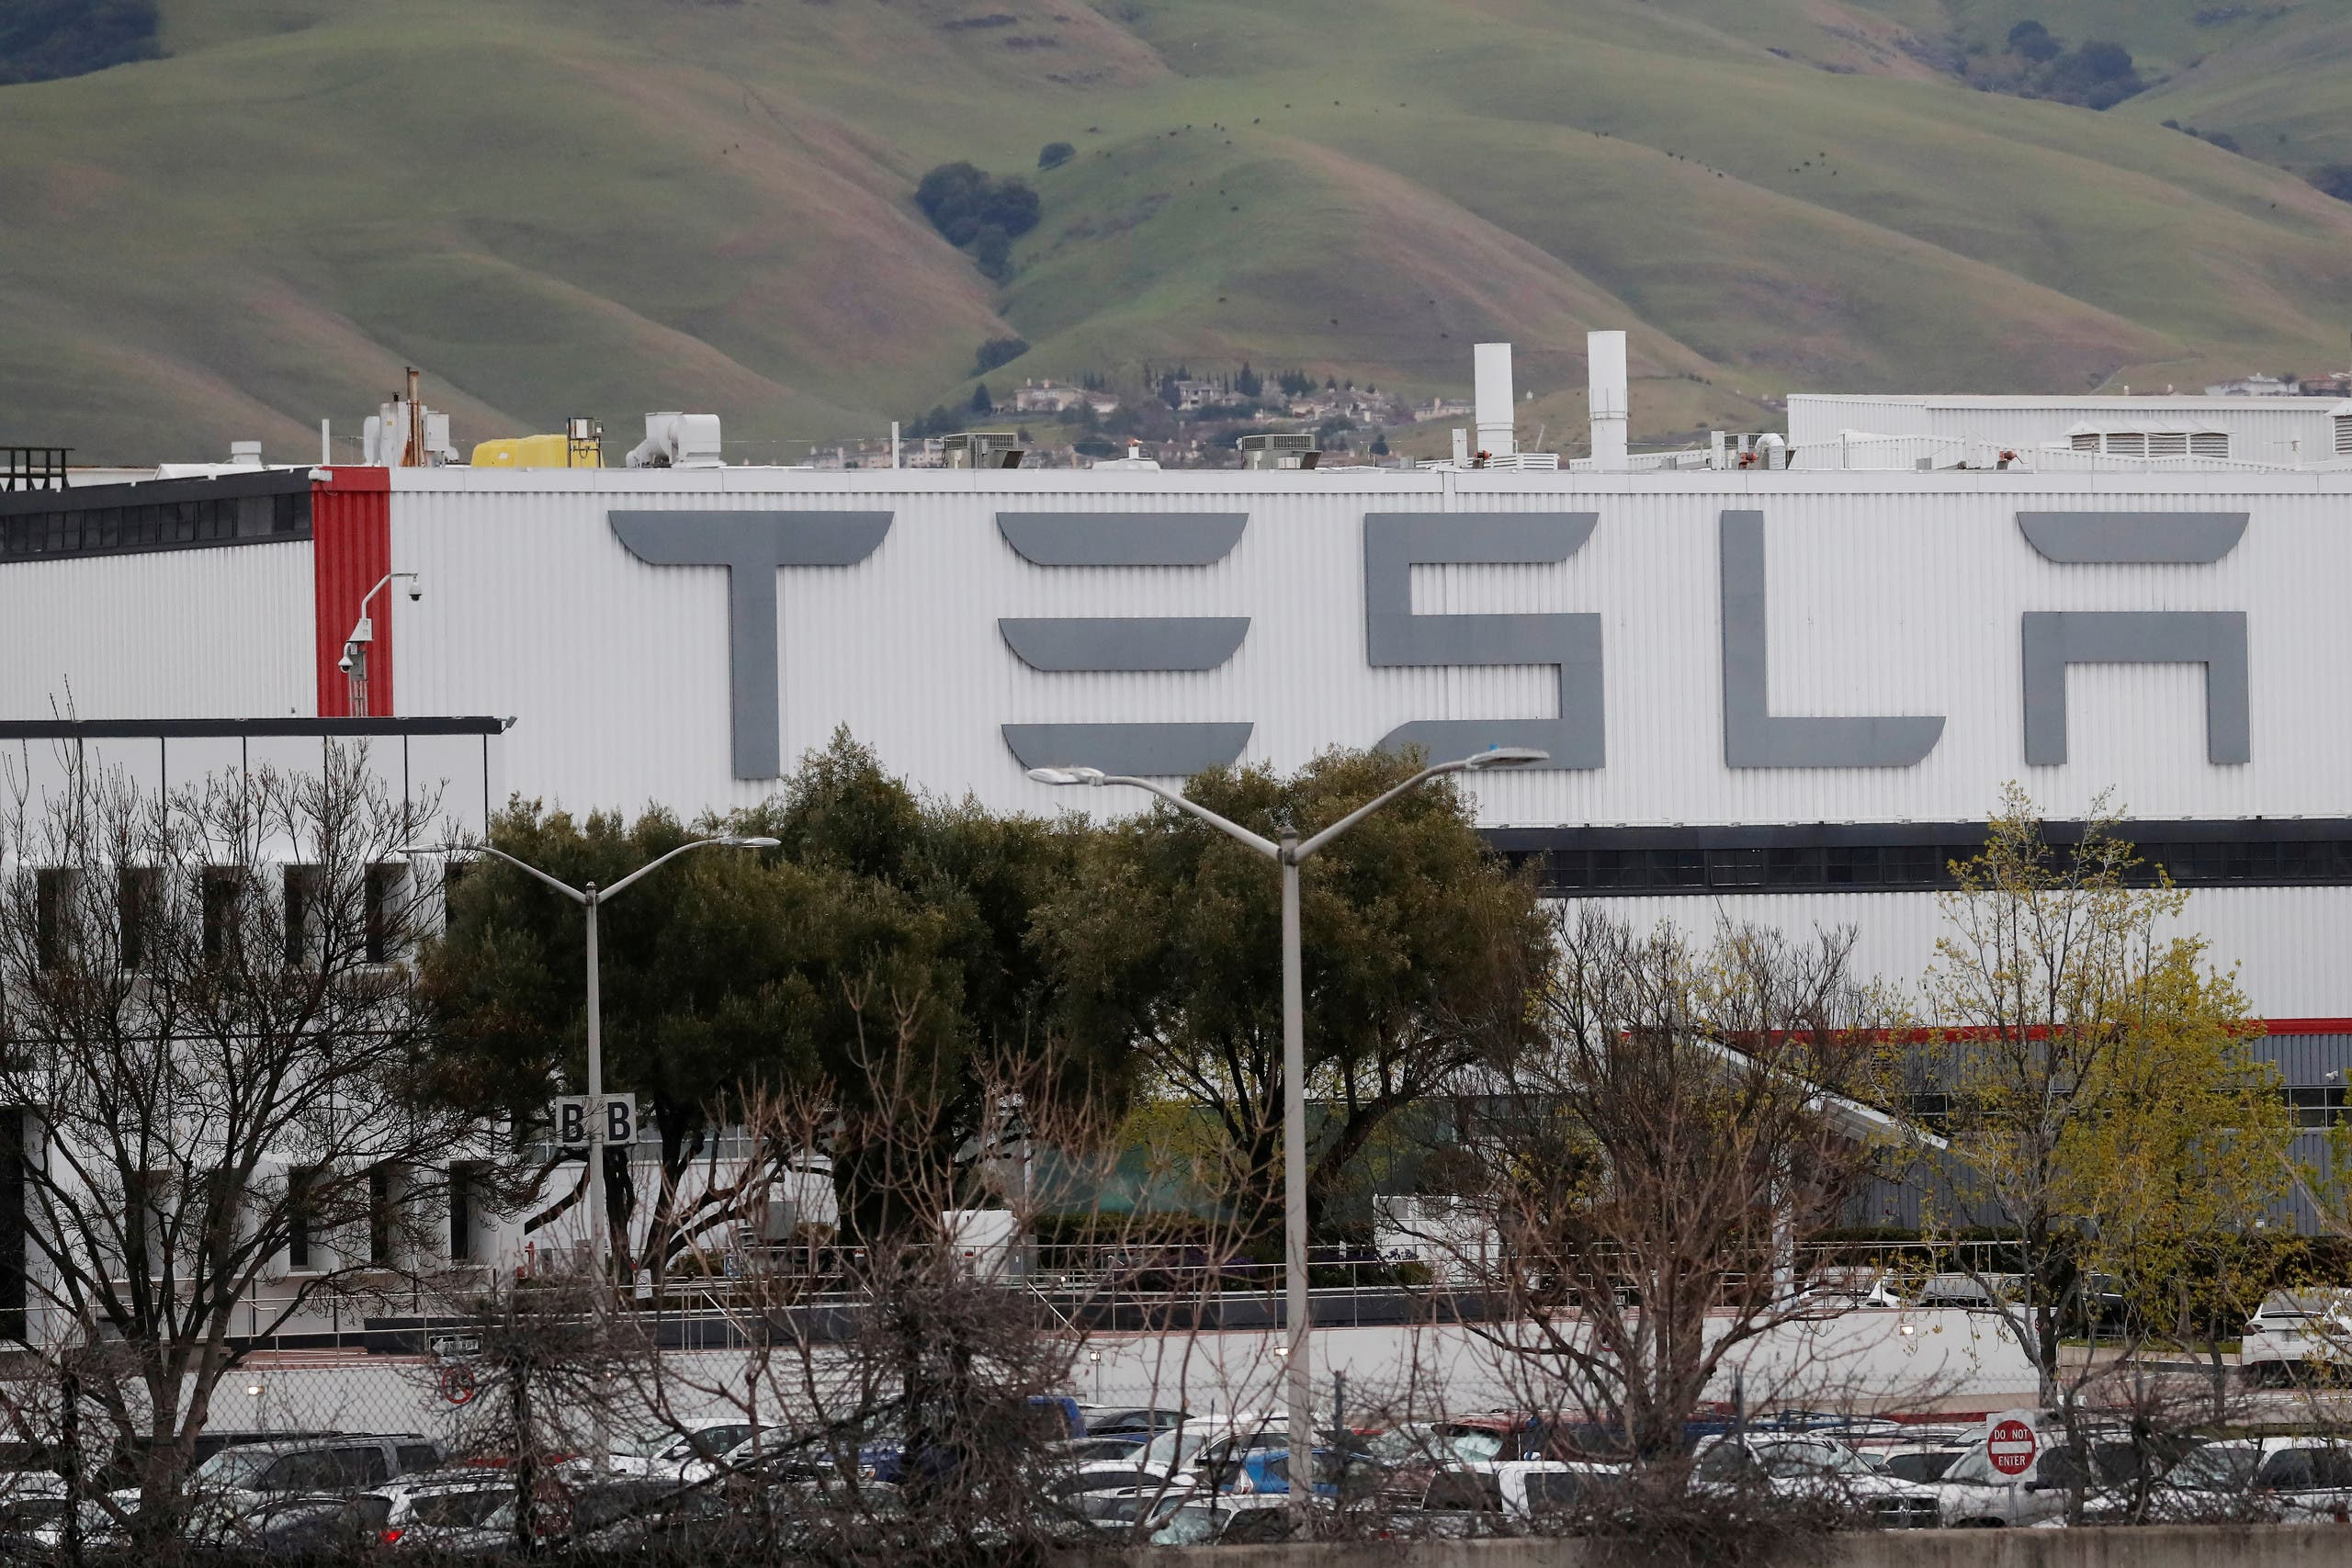 A view of Tesla's US vehicle factory in Fremont, California, on March 18, 2020. (Reuters)